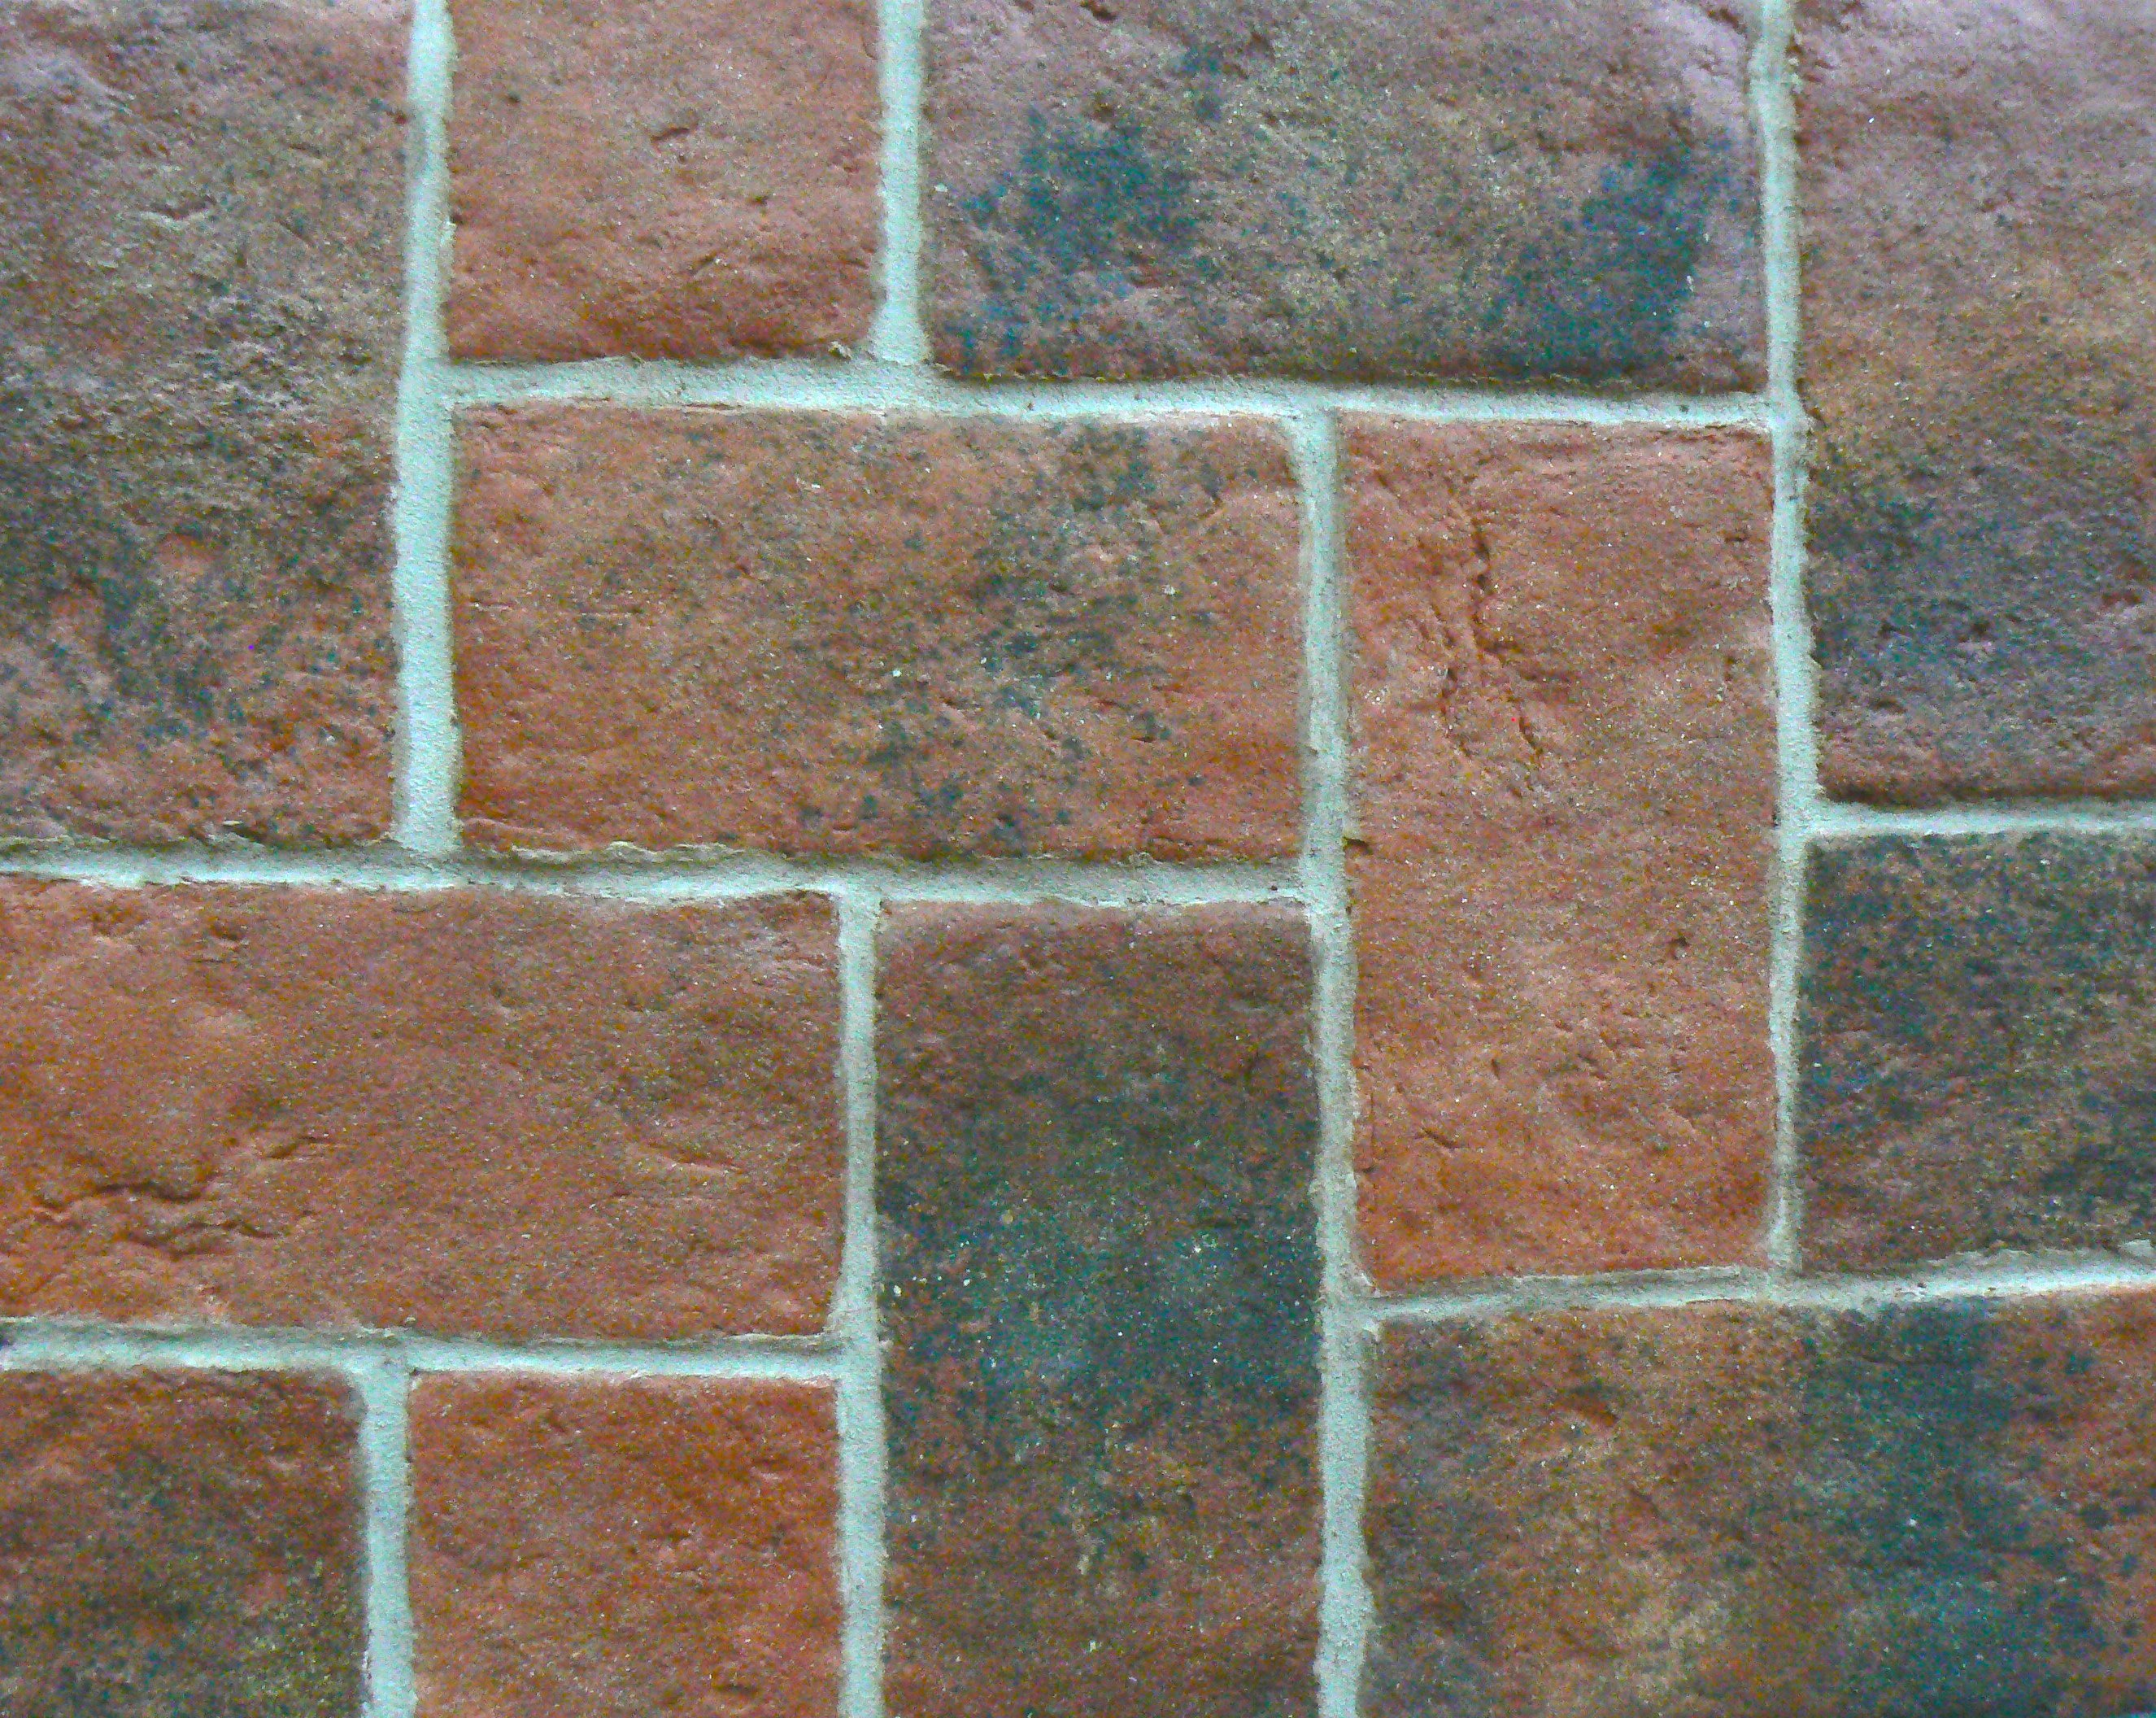 White Brick Look Tile Flemish Bond 24 Brick Tile News From Inglenook Tile